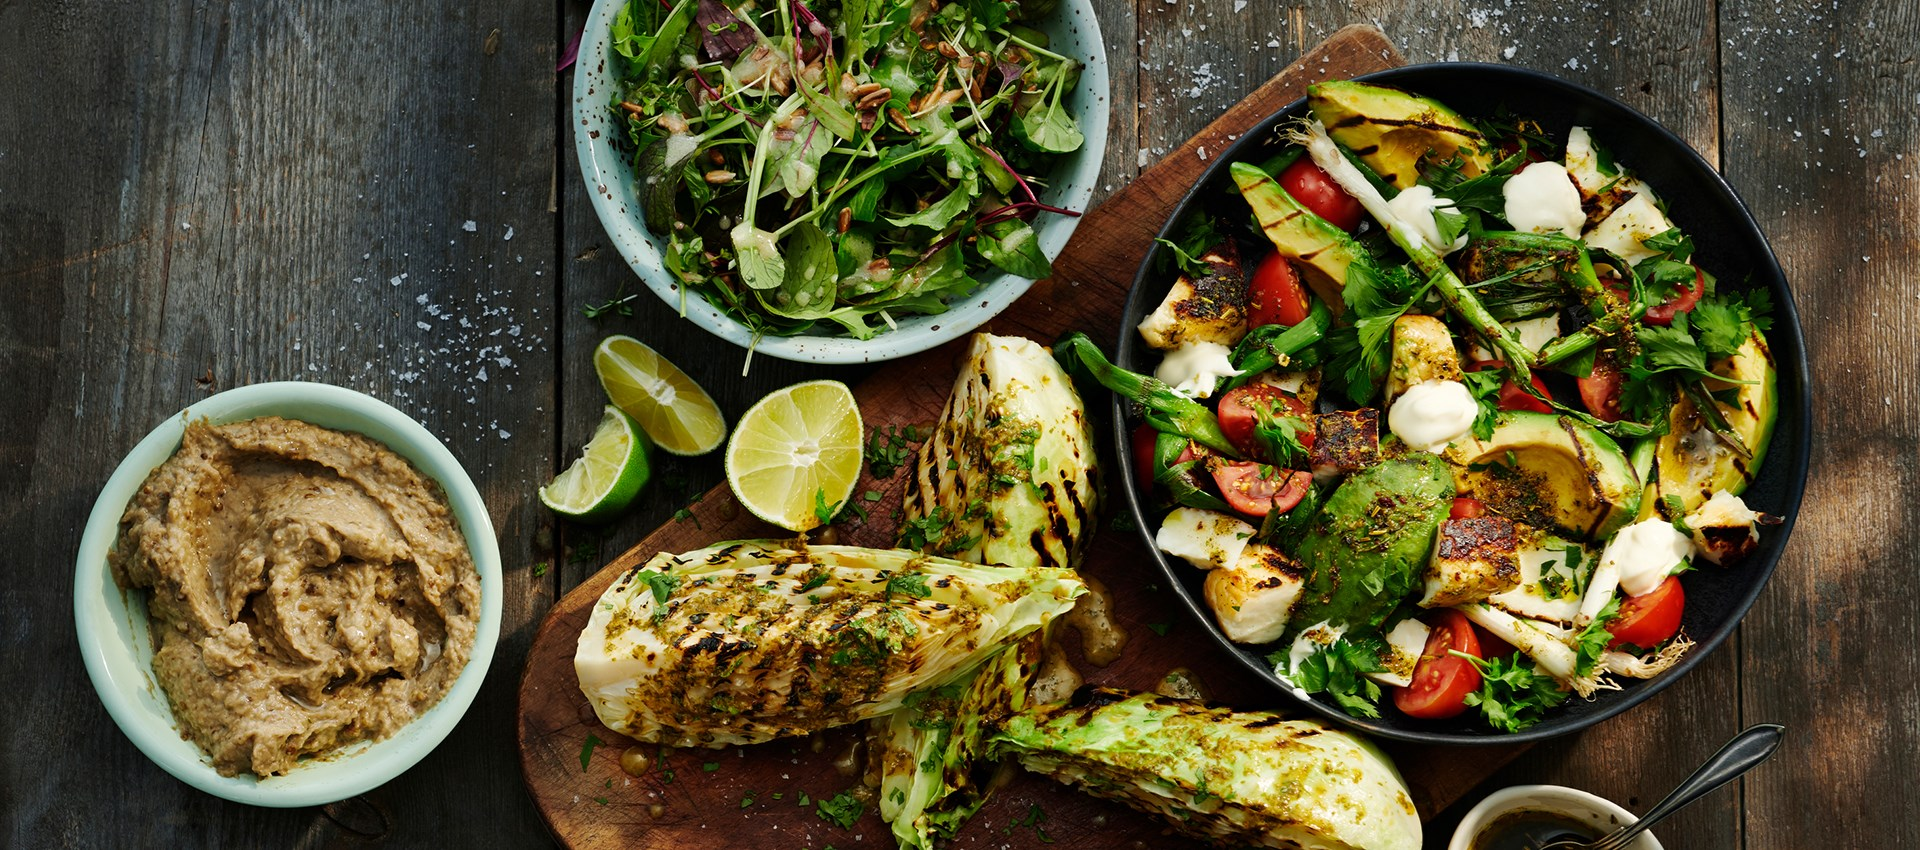 Baba Ganoush, grilled asian cabbage, garden salad & grilled halloumi salad